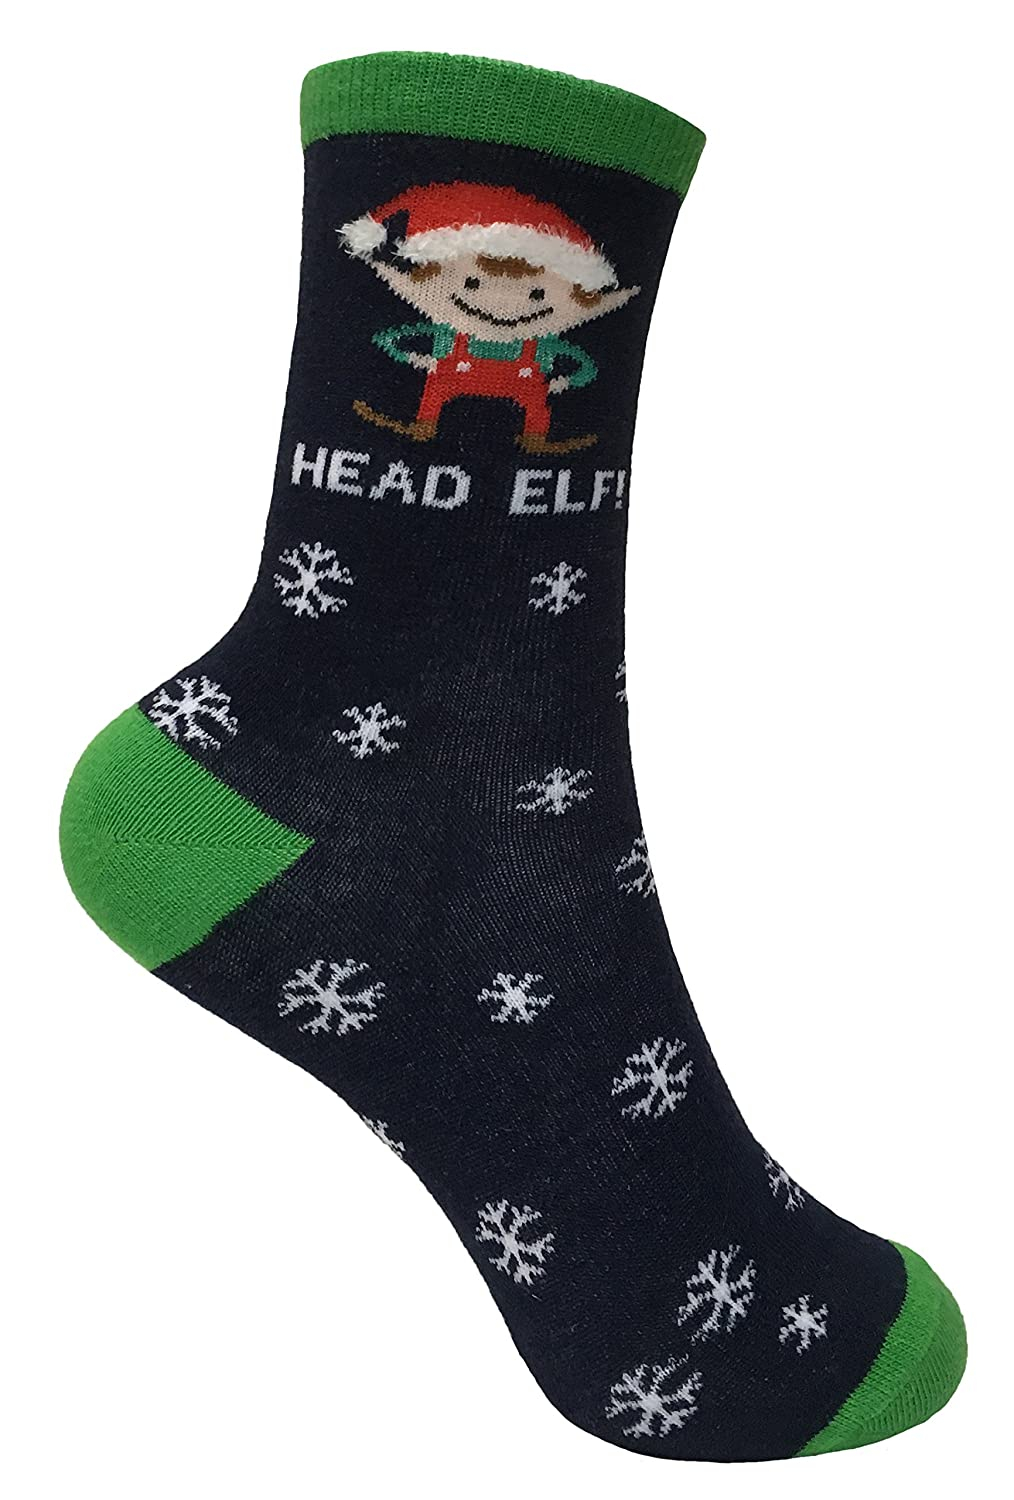 Kids//Childrens 4 Pack Thin Colourful Fun Cotton Rich Novelty Xmas Christmas Socks 3 Sizes